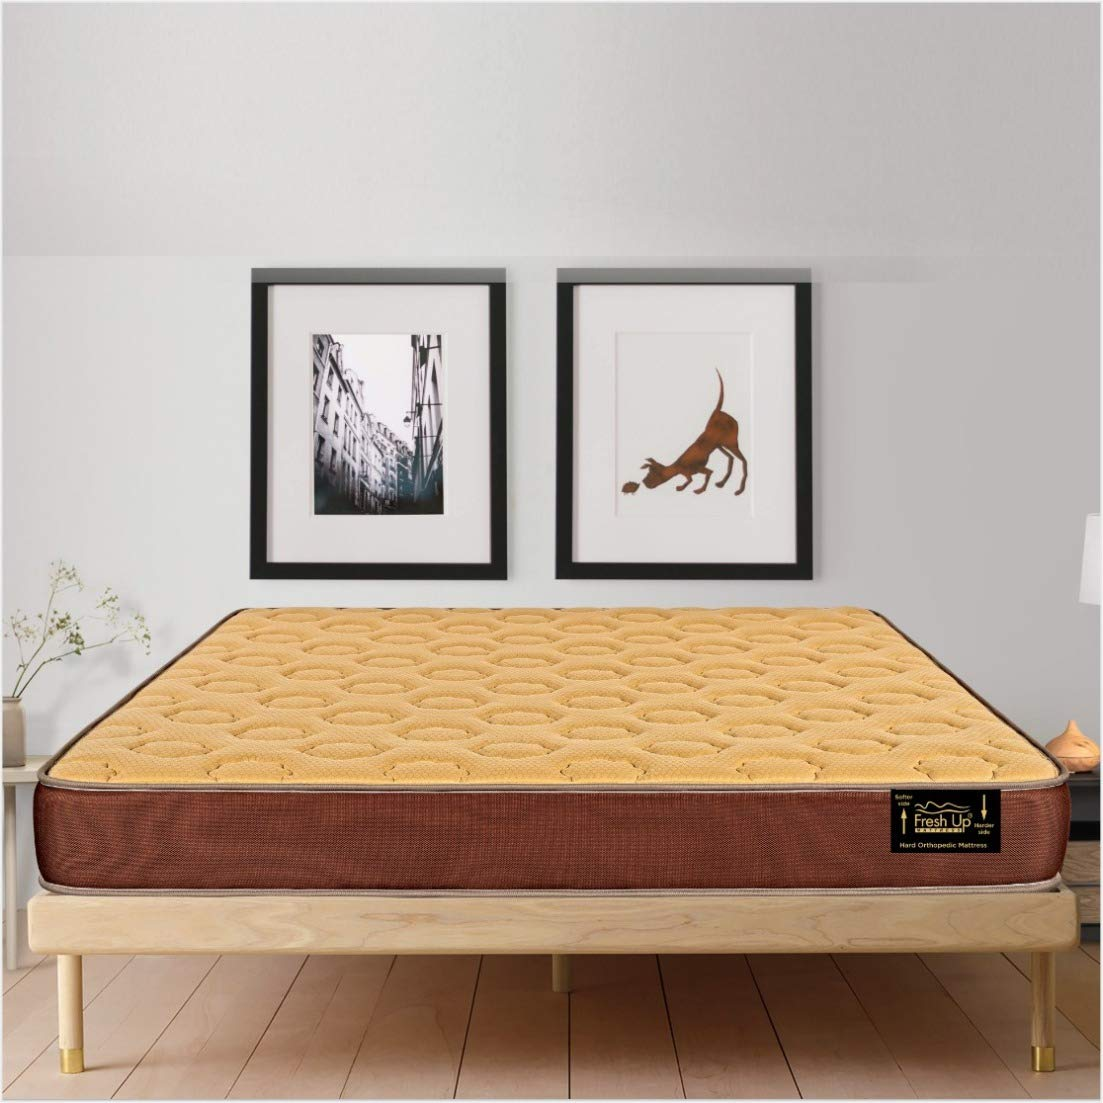 Best Mattress Pick On Hot New Release Mattresses by grabitonce.in